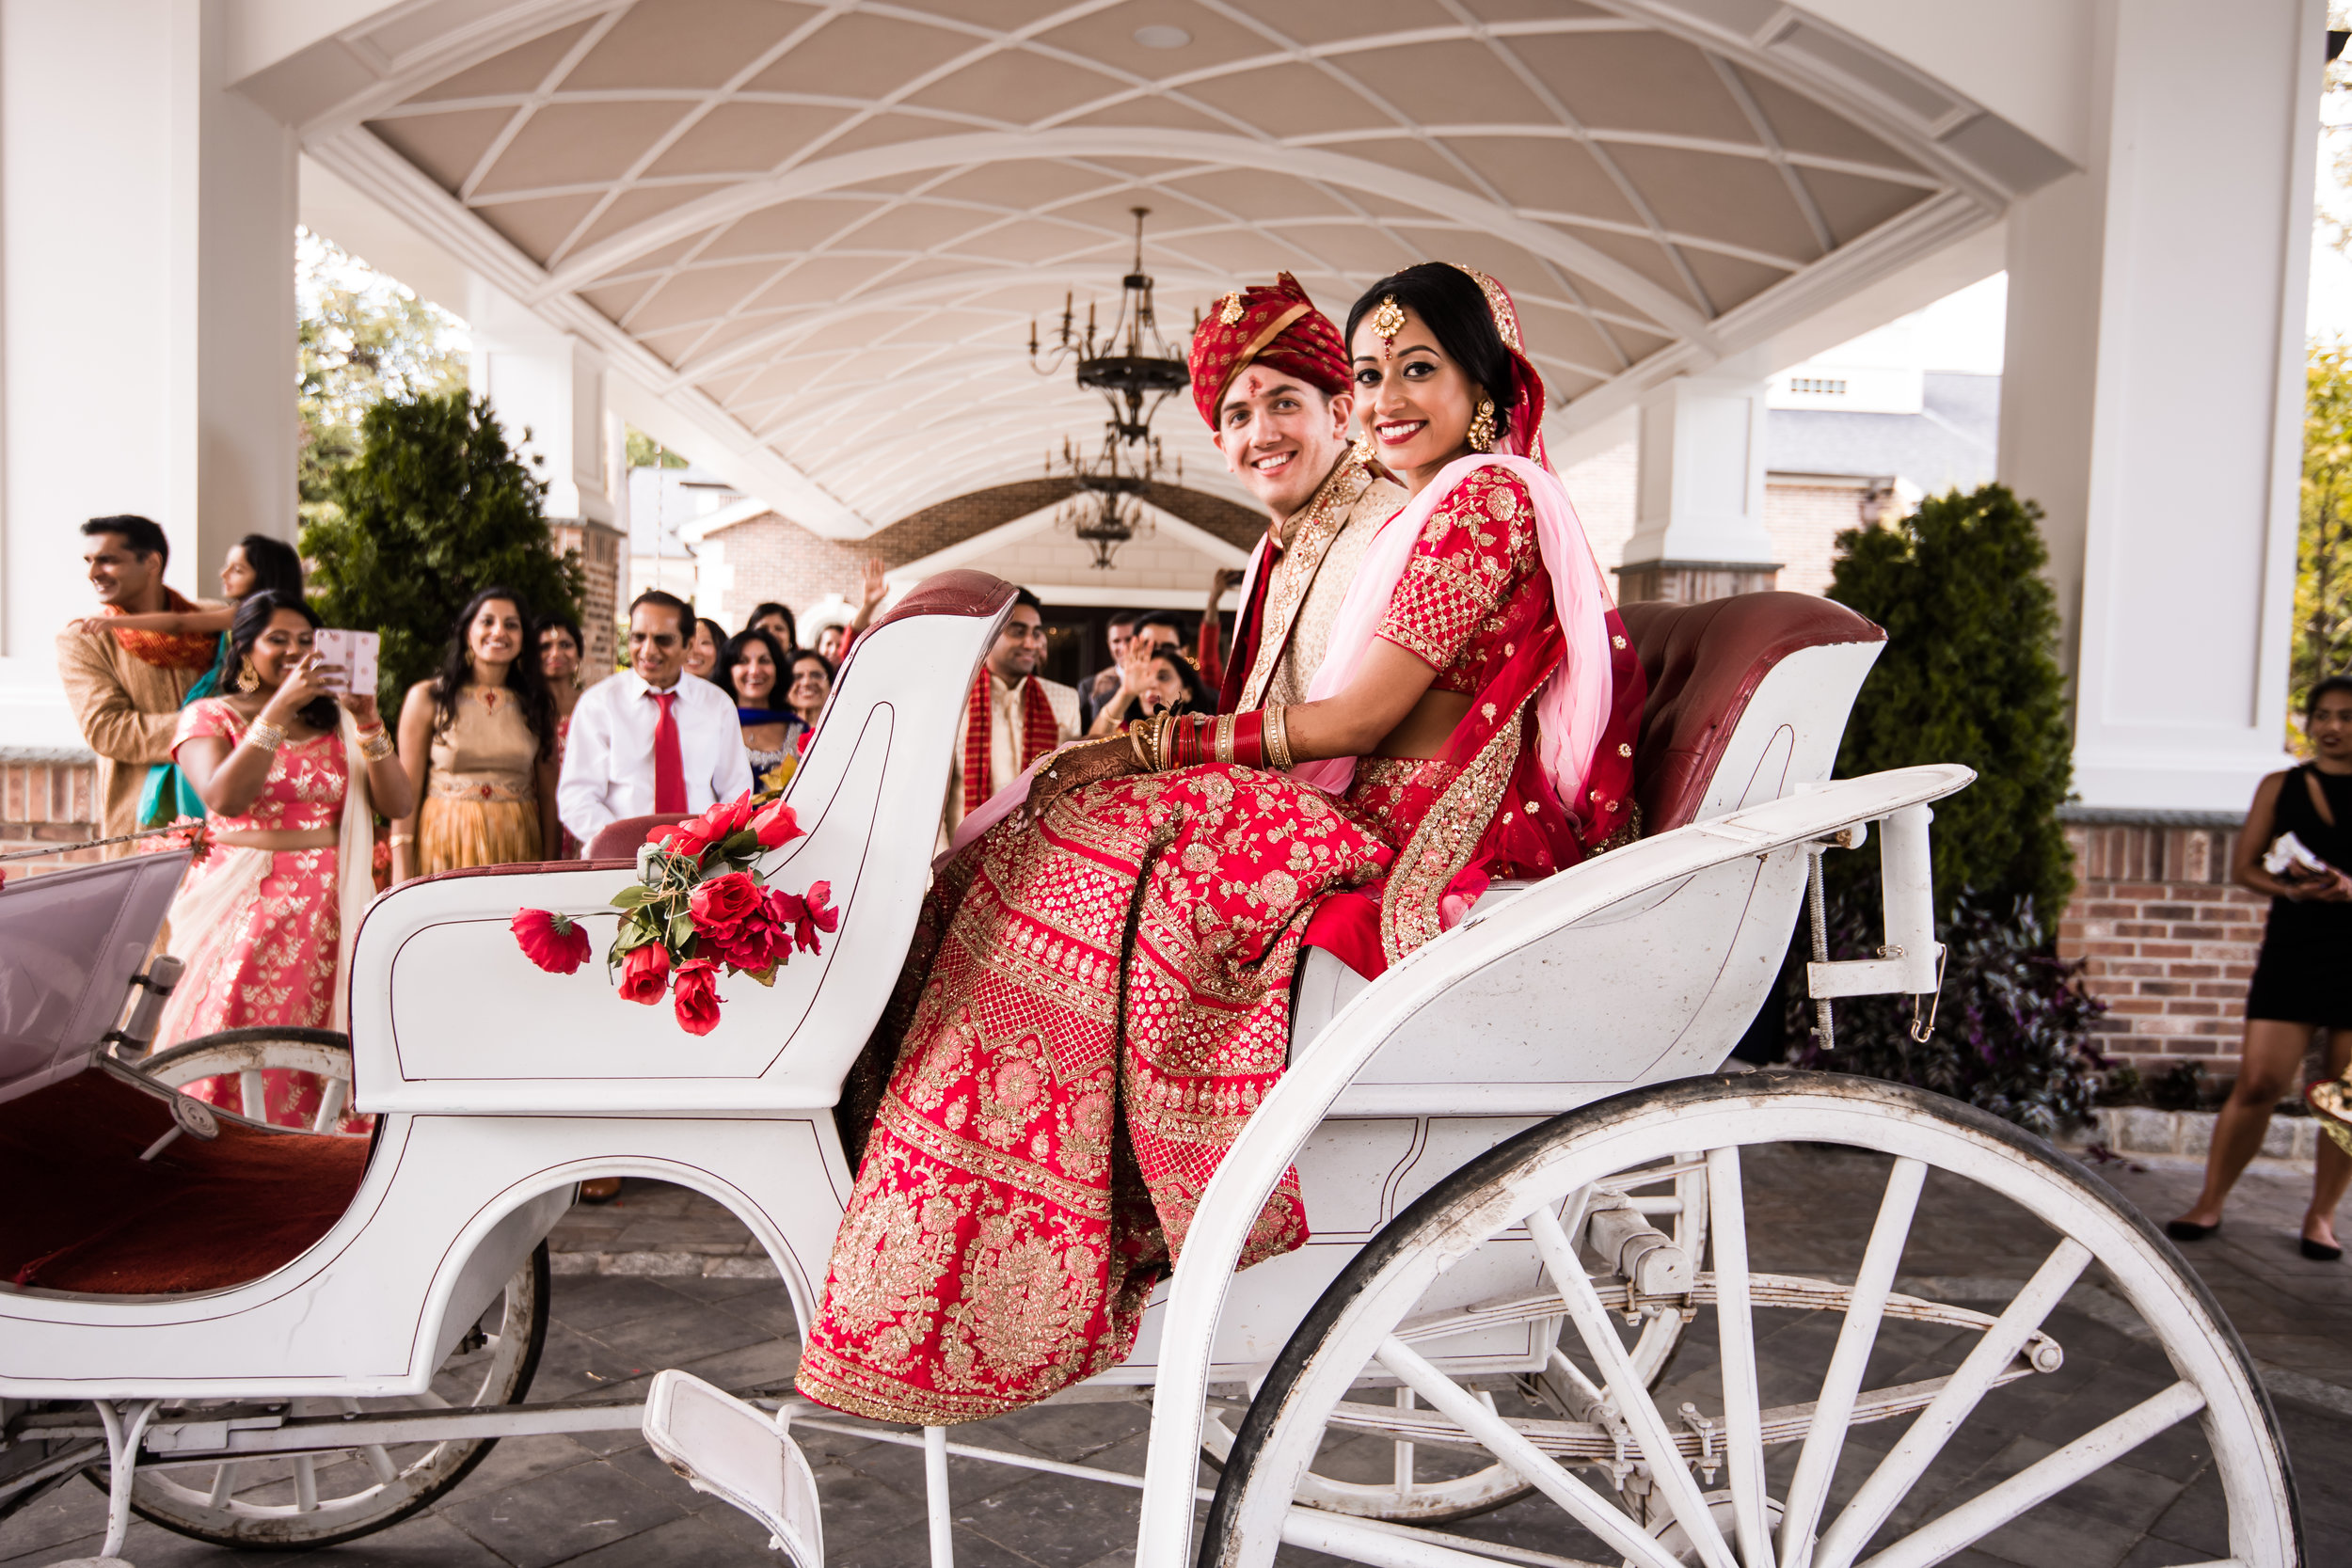 INDIAN WEDDING BRIDE AND GROOM ON CARRIAGE.jpg